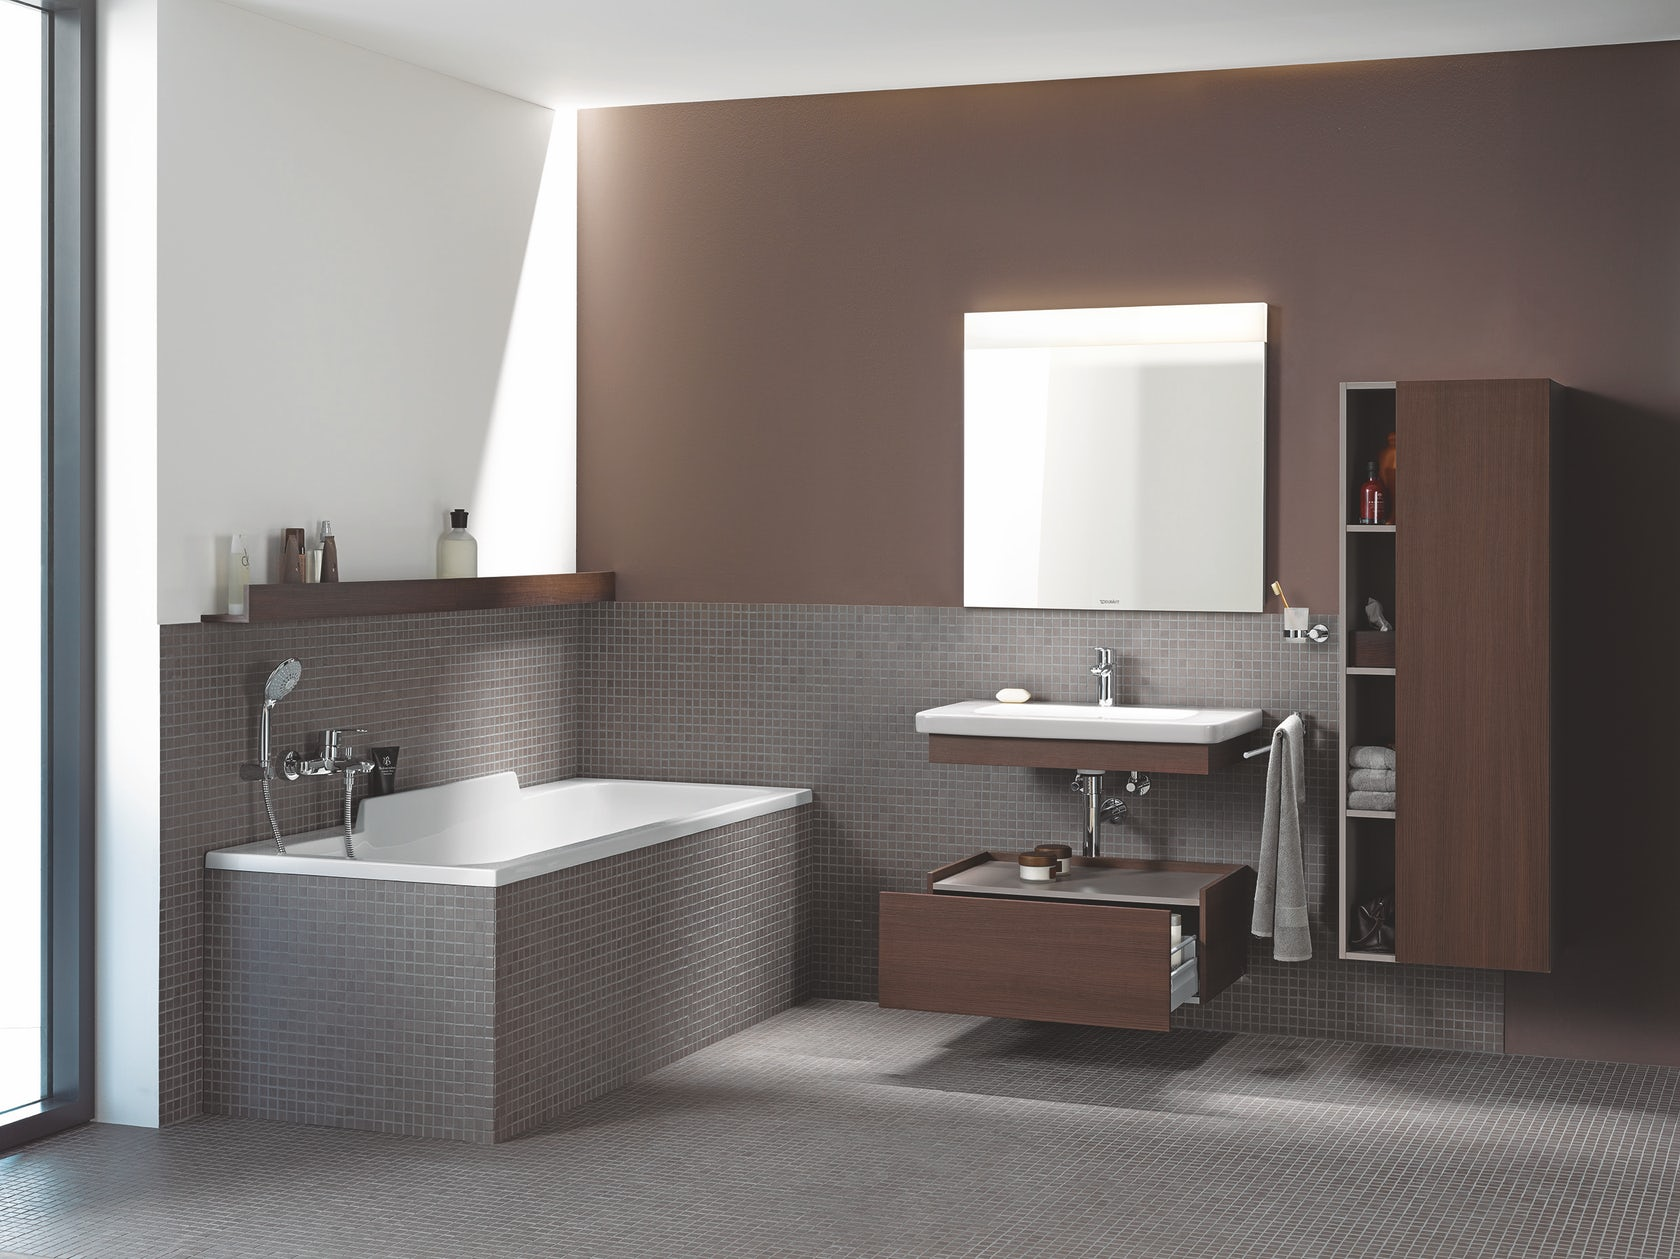 M And S Bathroom Accessories Duravit On Architizer